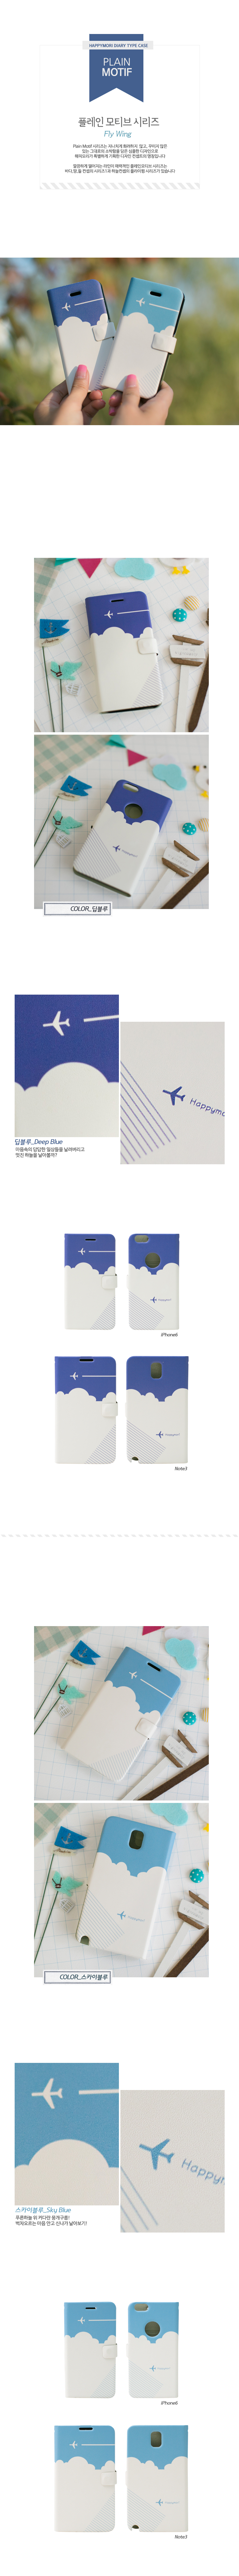 [HAPPYMORI] Flip Cover Case _ Plain-Motif Fly Wing 2Color (iPhone4_4s,iPhone5_5s,iPhone6_6s)